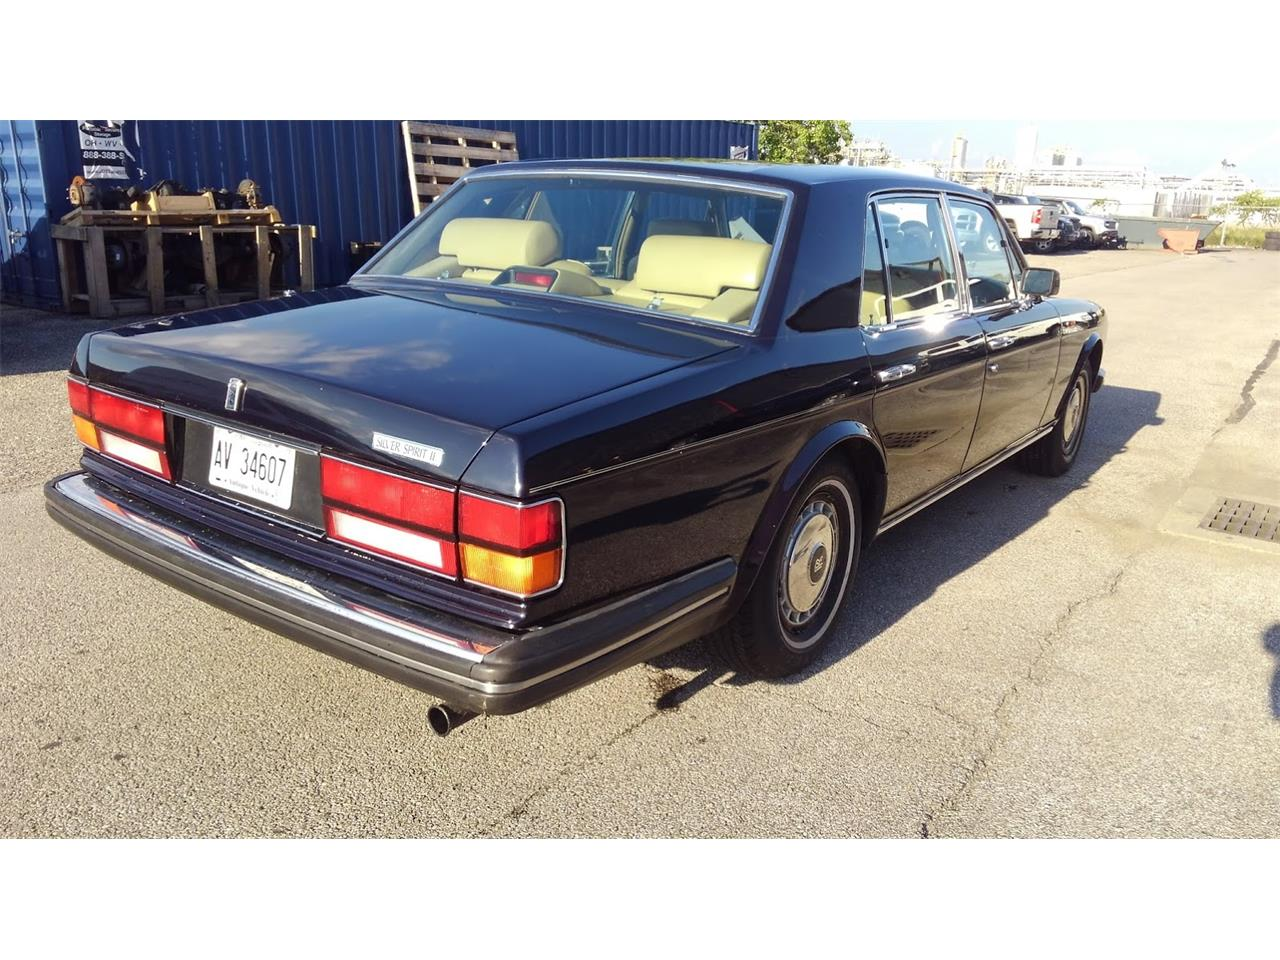 Large Picture of 1990 Rolls-Royce Silver Spirit located in charleston West Virginia - $14,000.00 Offered by a Private Seller - NP63